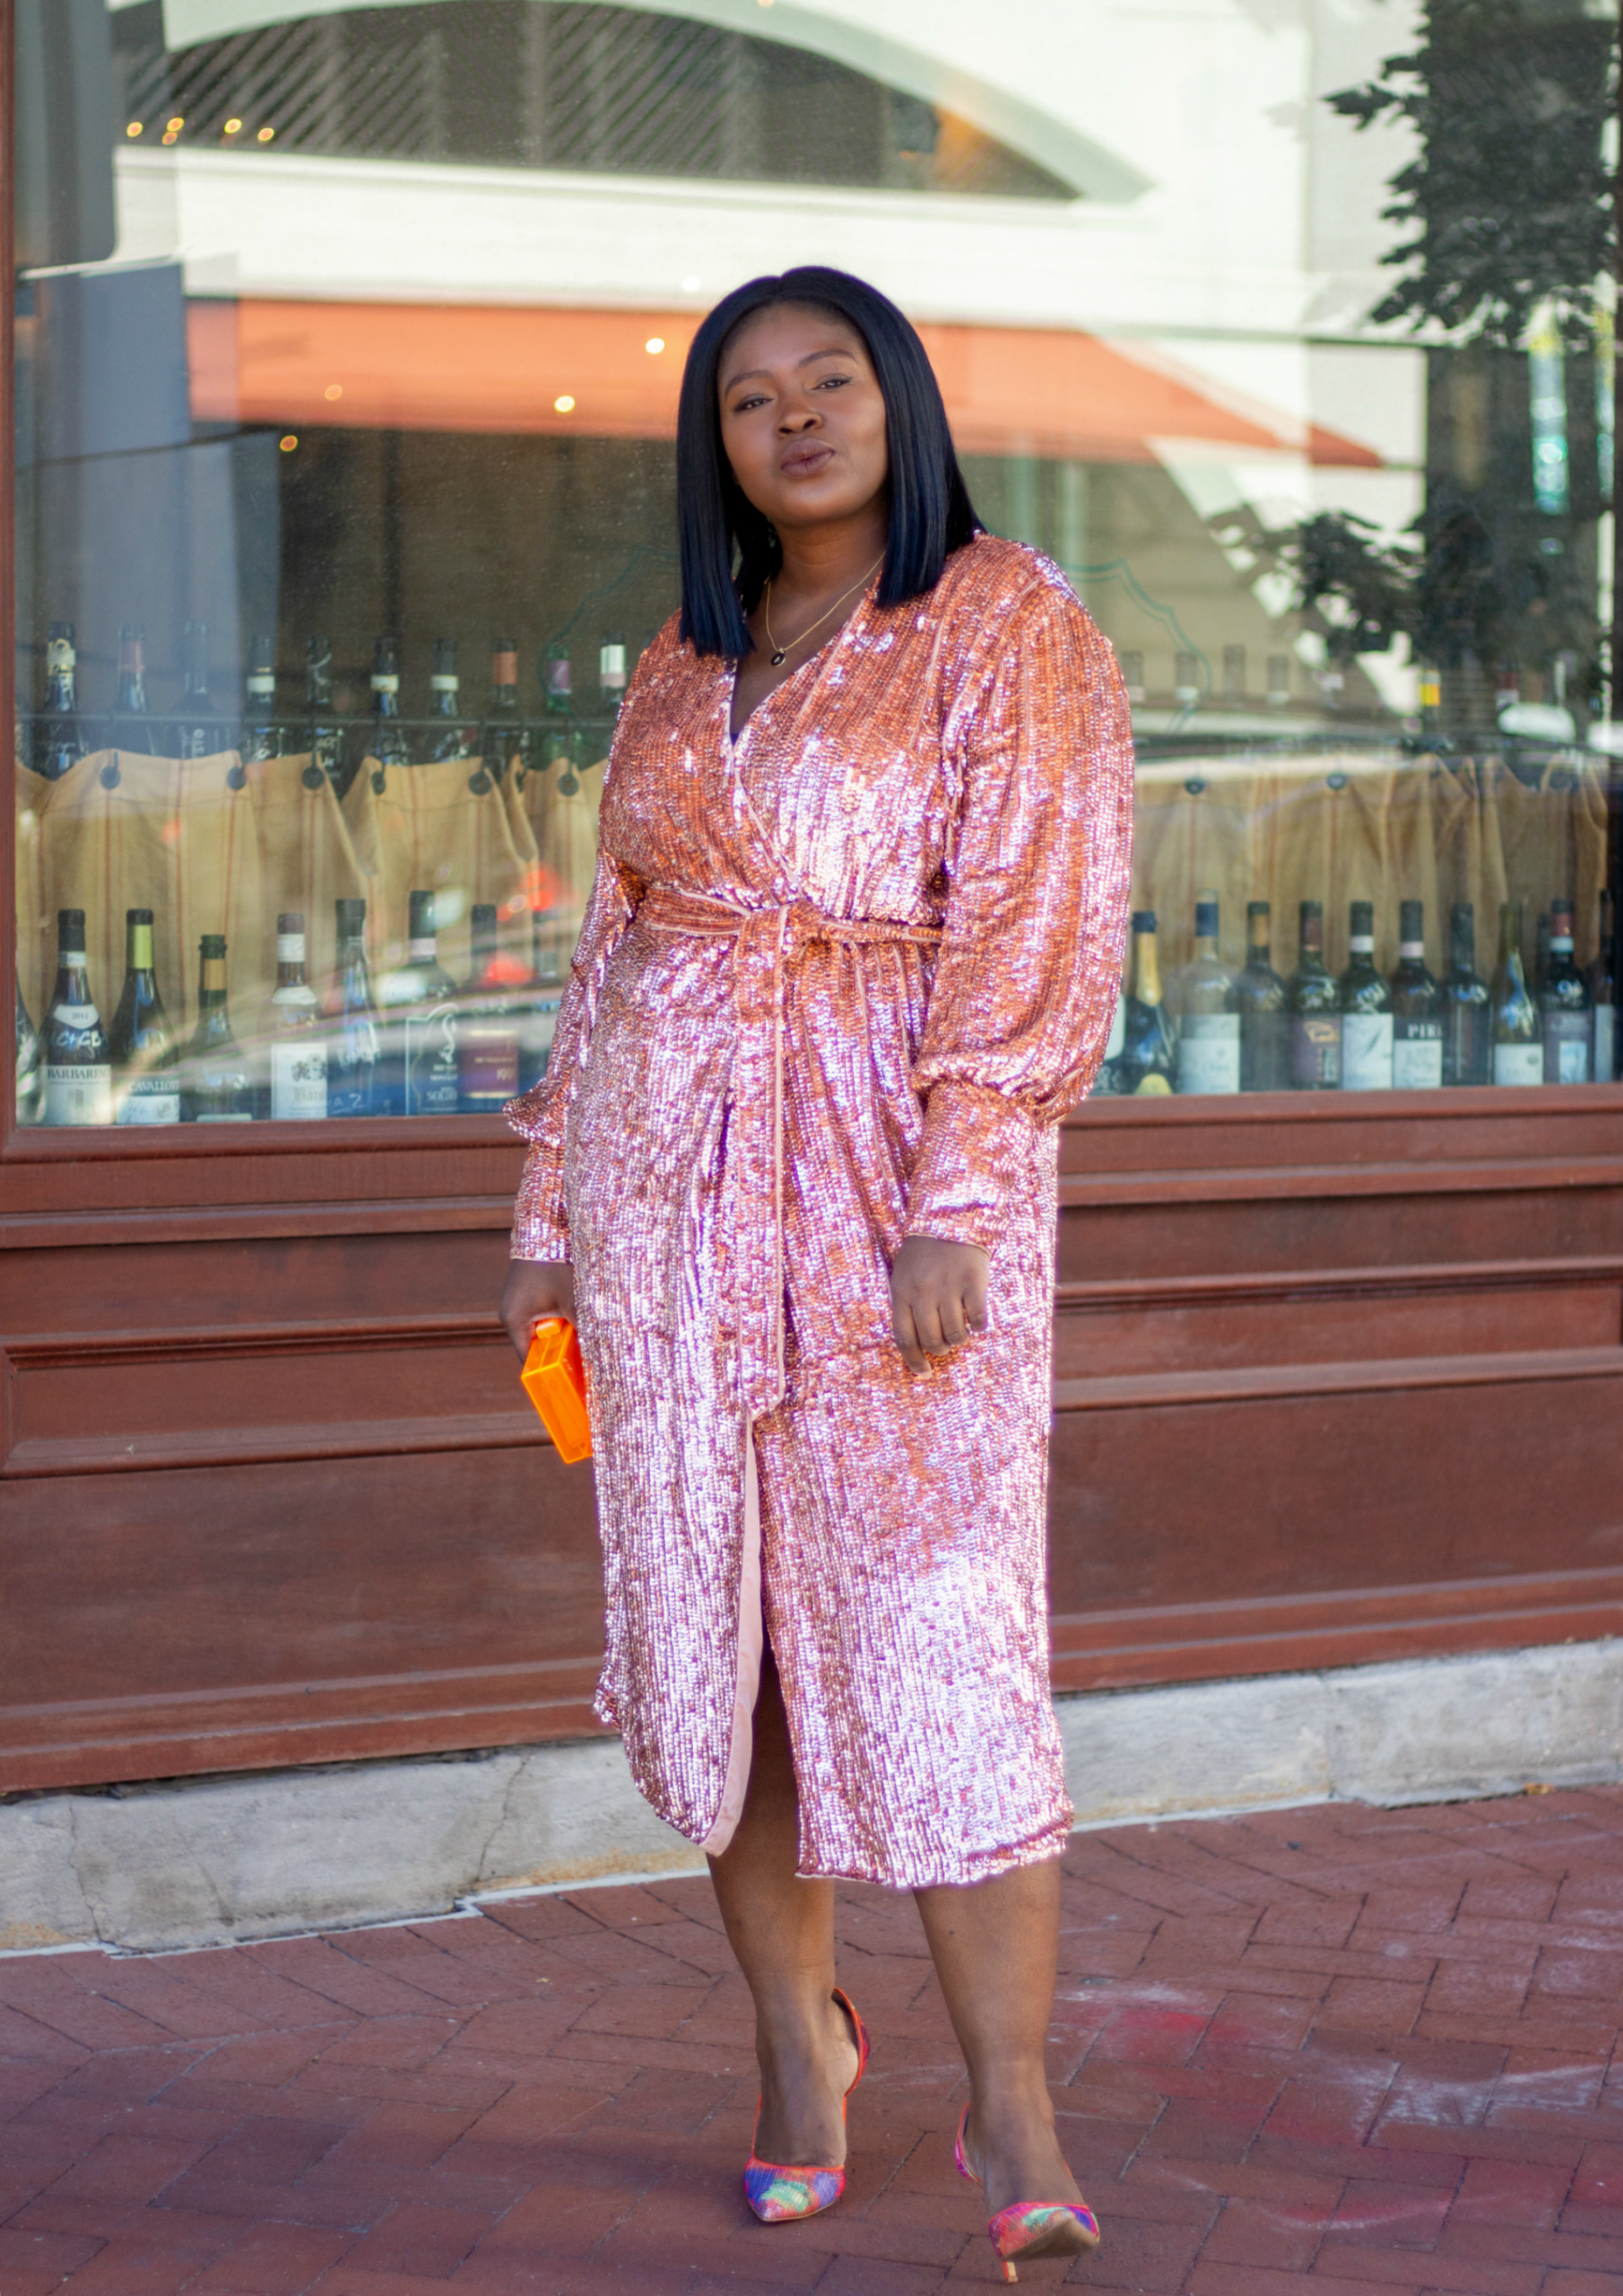 Where To Find The Best Holiday Party Dresses in 2019 from Supplechic a lifestyle and fashion blog based in Baltimore_-09